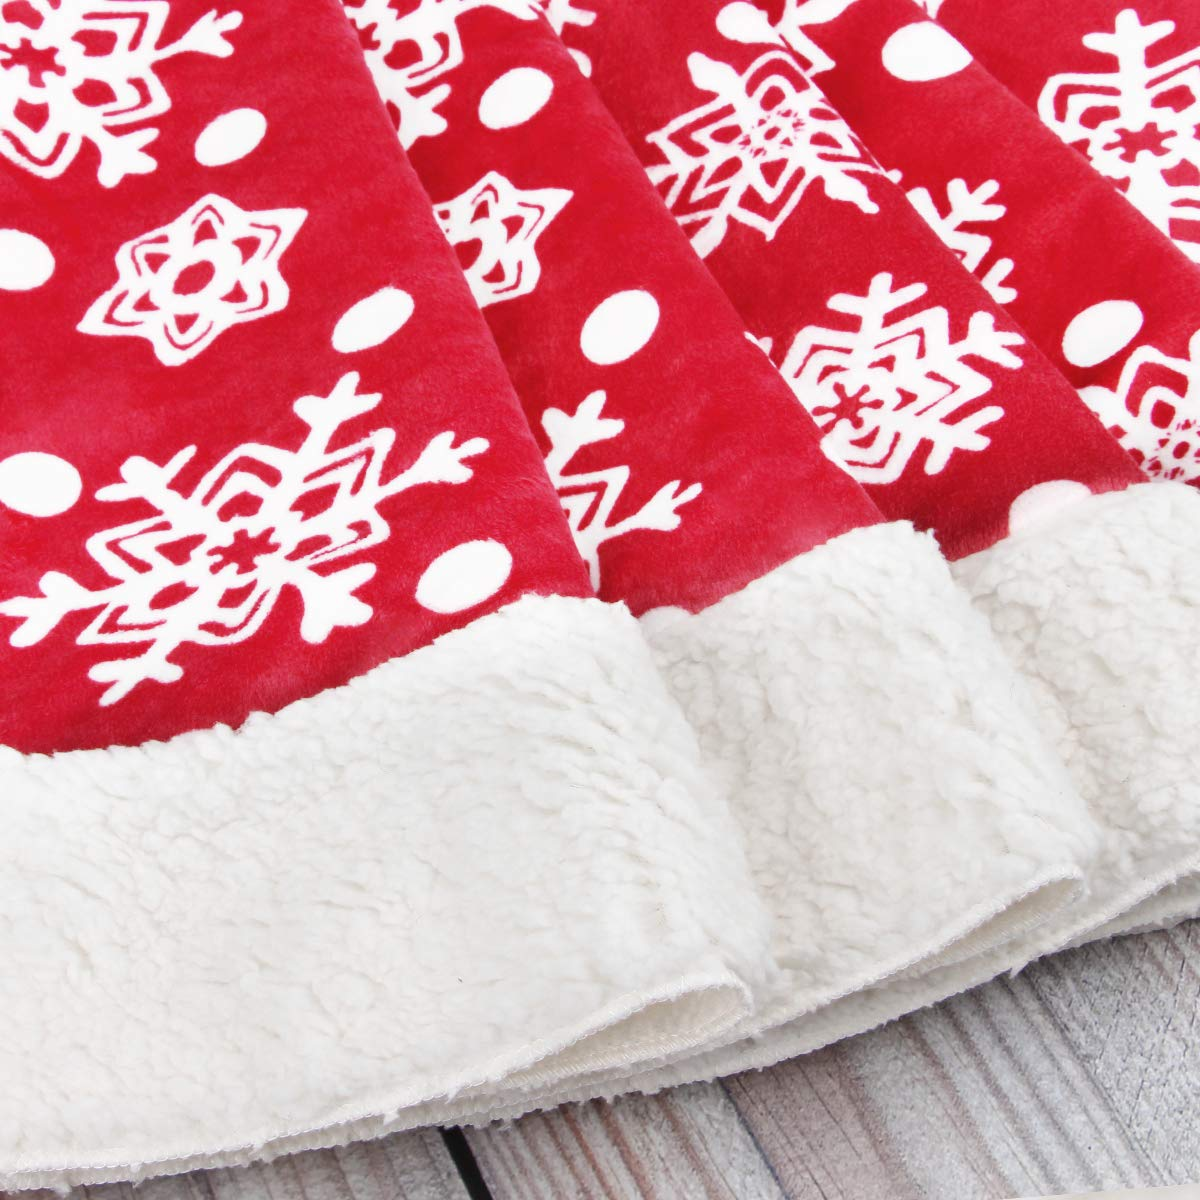 Aitey Christmas Tree Skirt 48 Luxury Velvet Snowflake Tree Skirt for Xmas Party Decor Festive Holiday Ornaments Indoor Outdoor